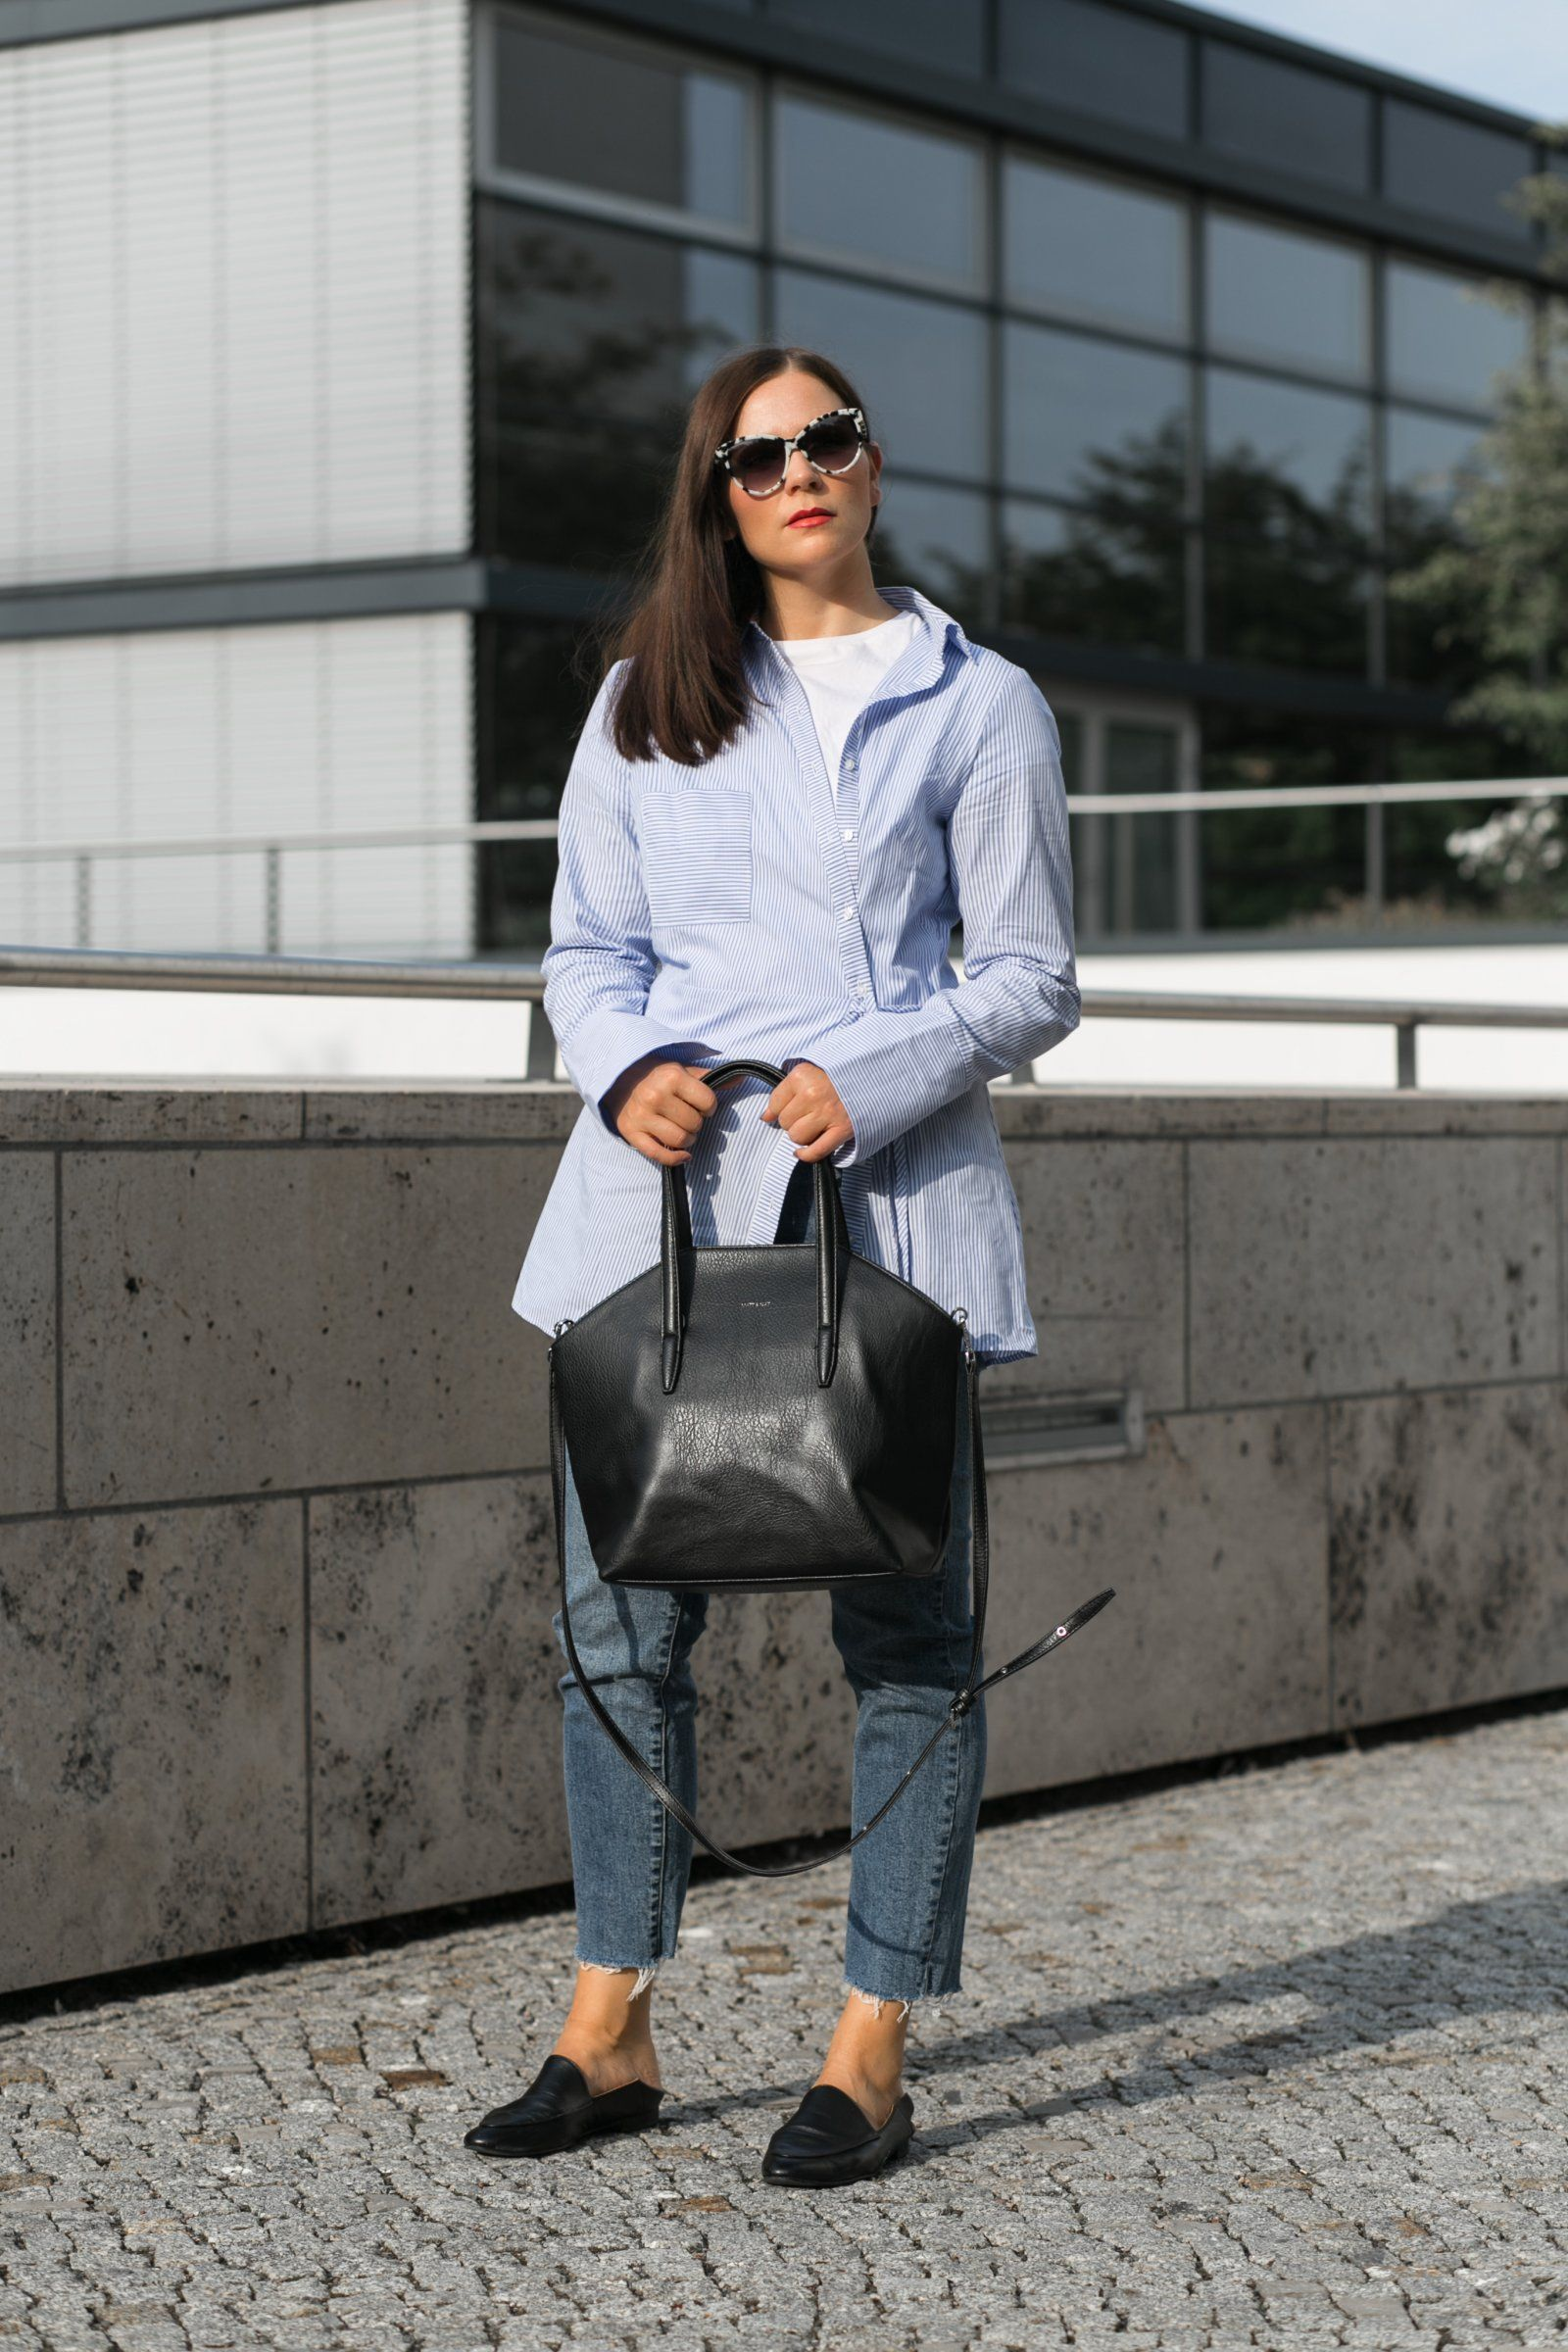 White t-shirt+blau striped shirt+straigt-leg jeans+black flat mules+black  tote bag+sunglasses. Fall Casual Outfit 2017 0be9d8e773